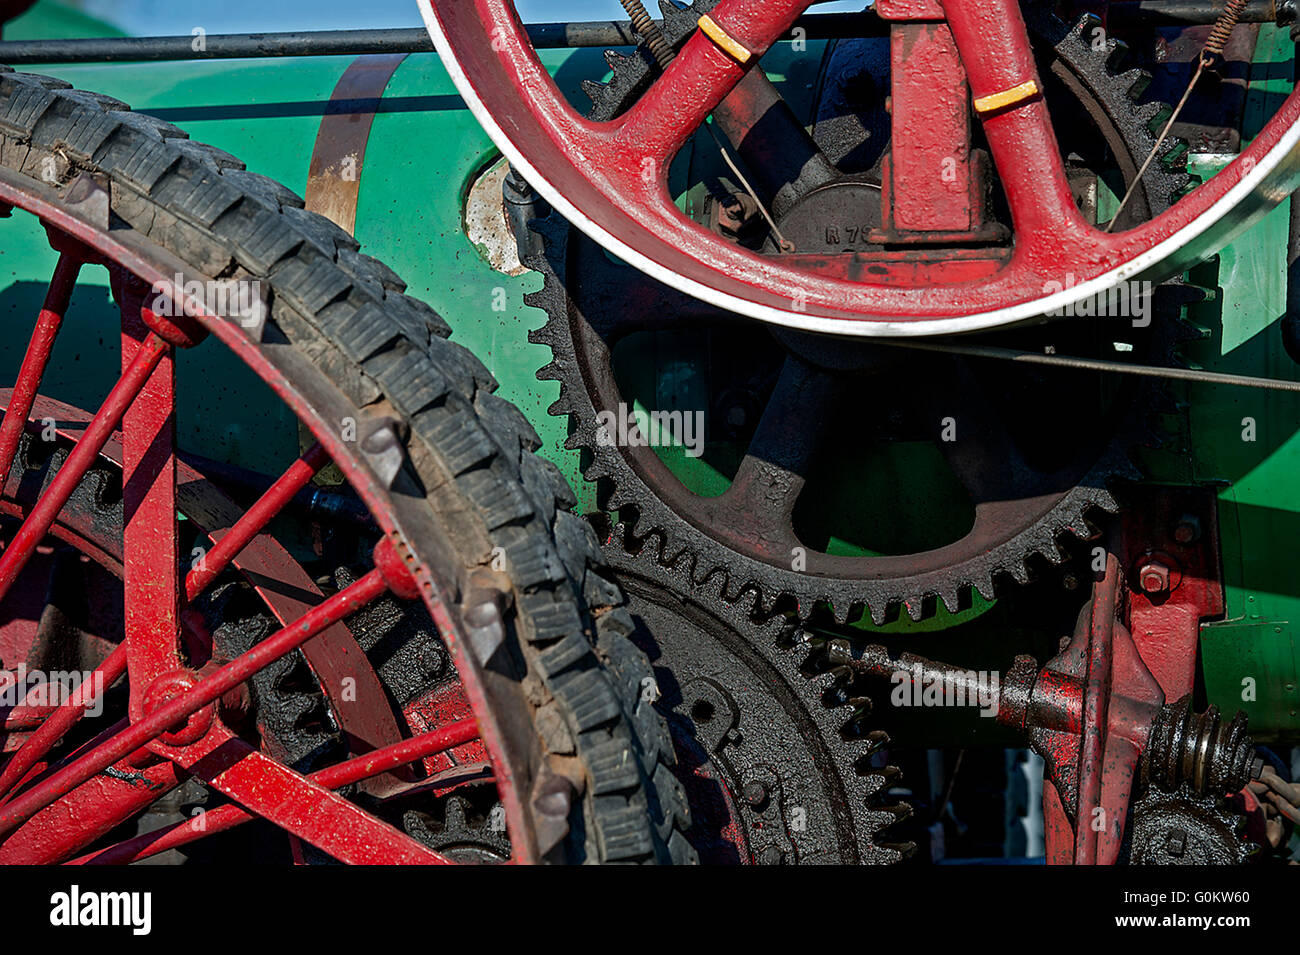 Wheels and things - Stock Image